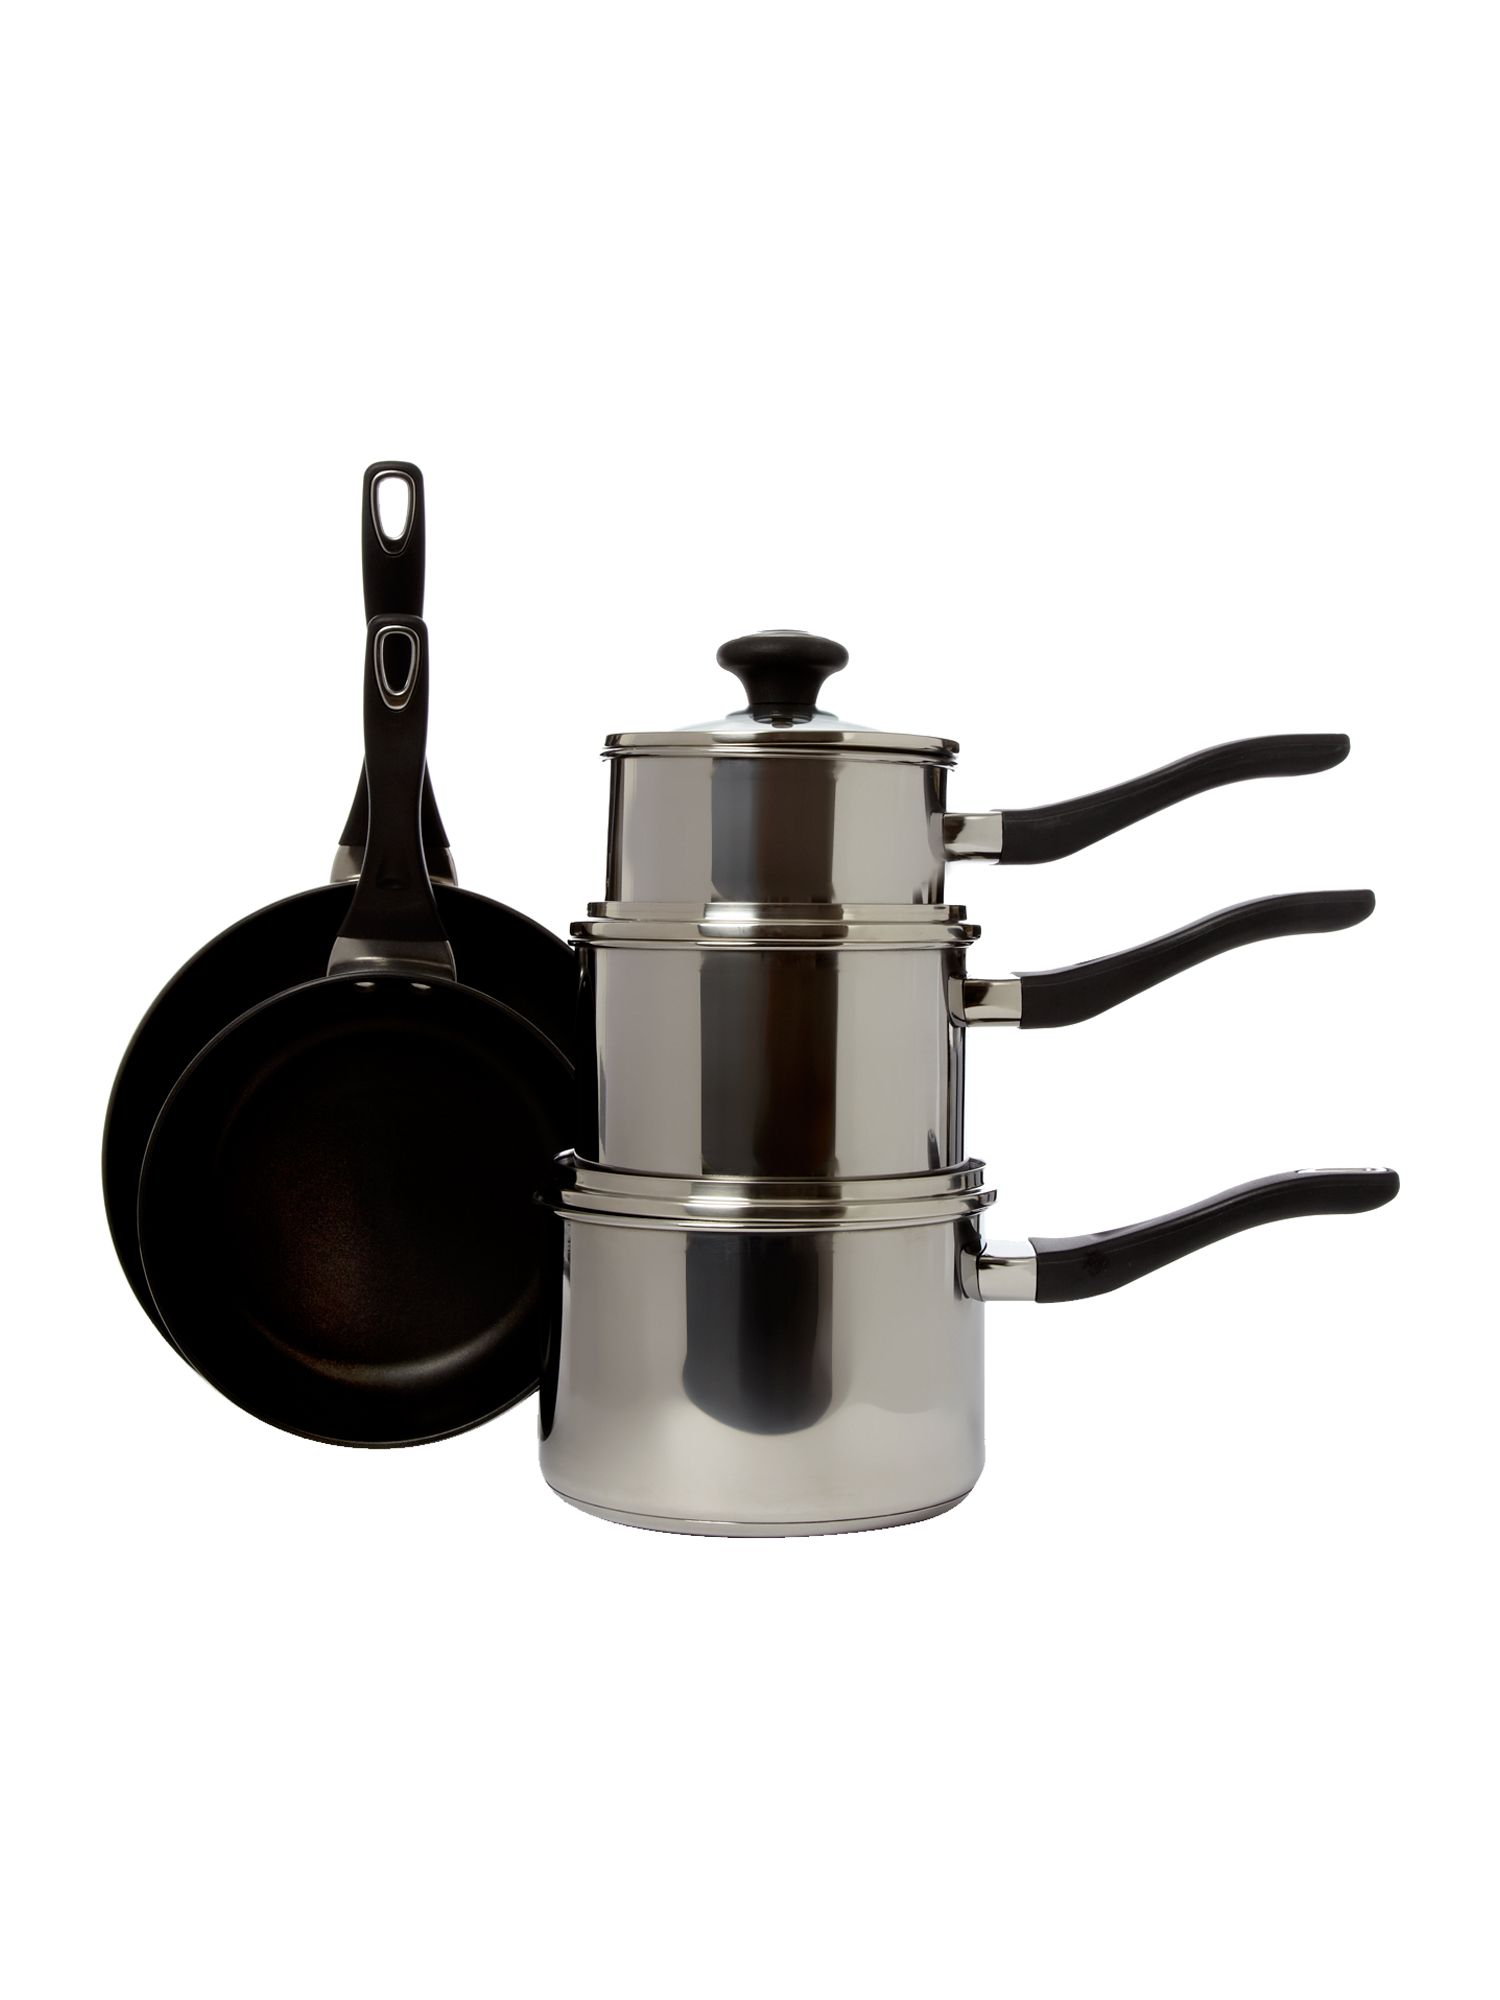 Stainless steel 5 piece pan set